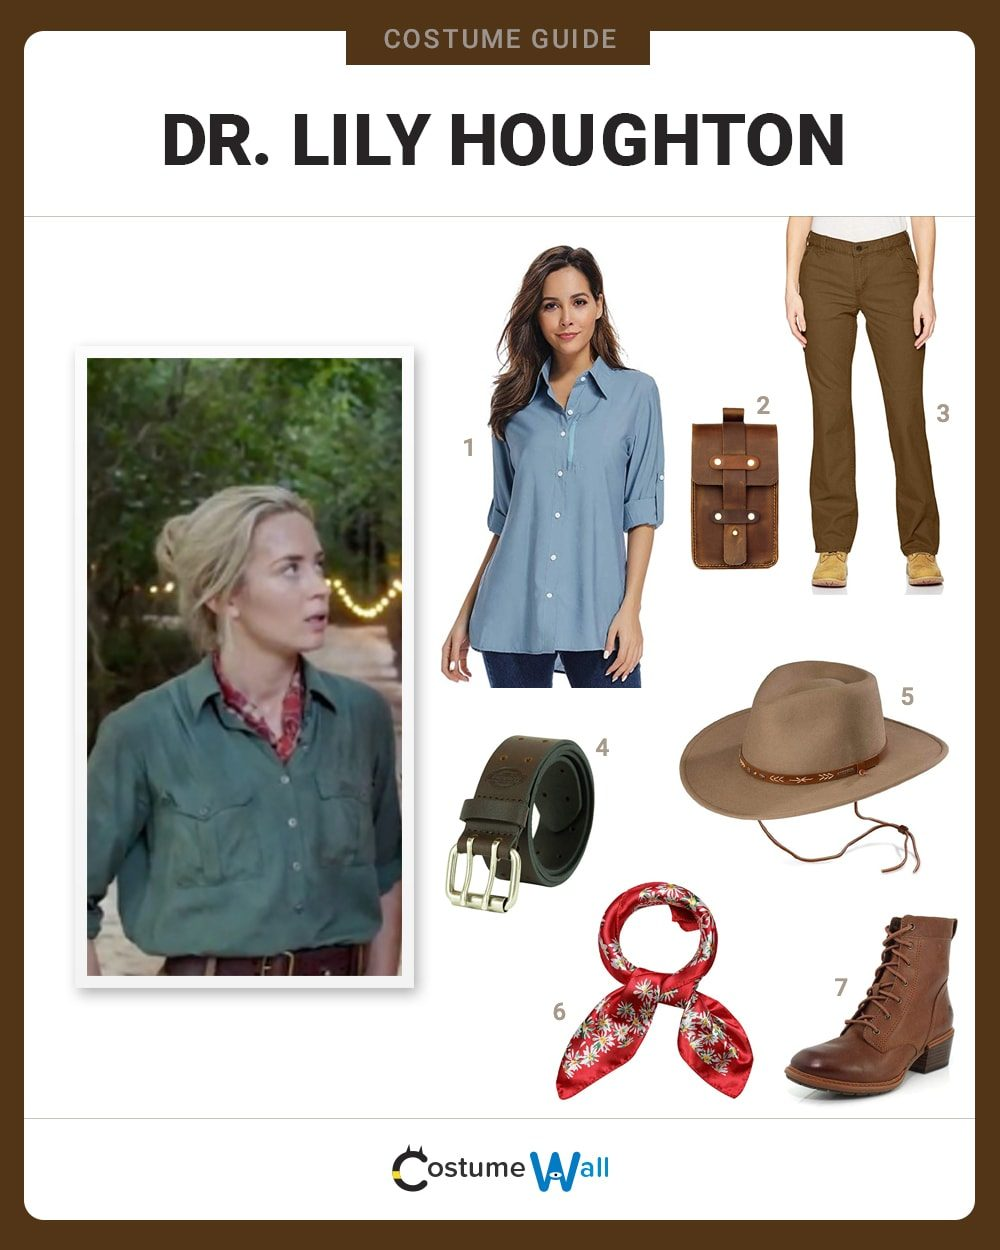 Dr. Lily Houghton Costume Guide